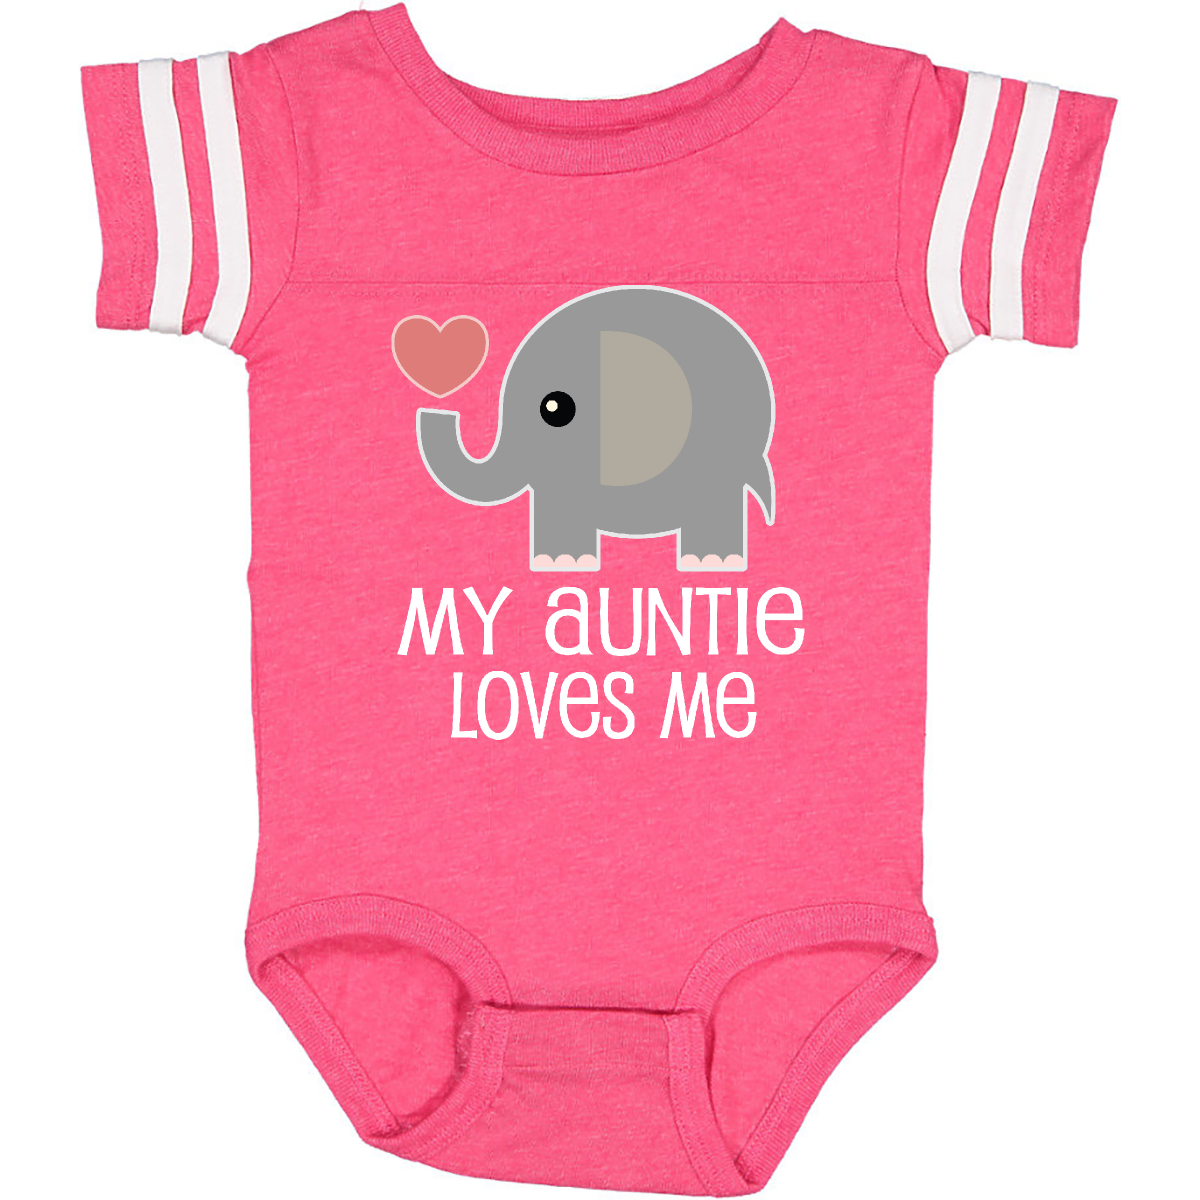 Im Going to Love Whales When I Grow Up Toddler//Kids Short Sleeve T-Shirt Just Like My Great-Grandma